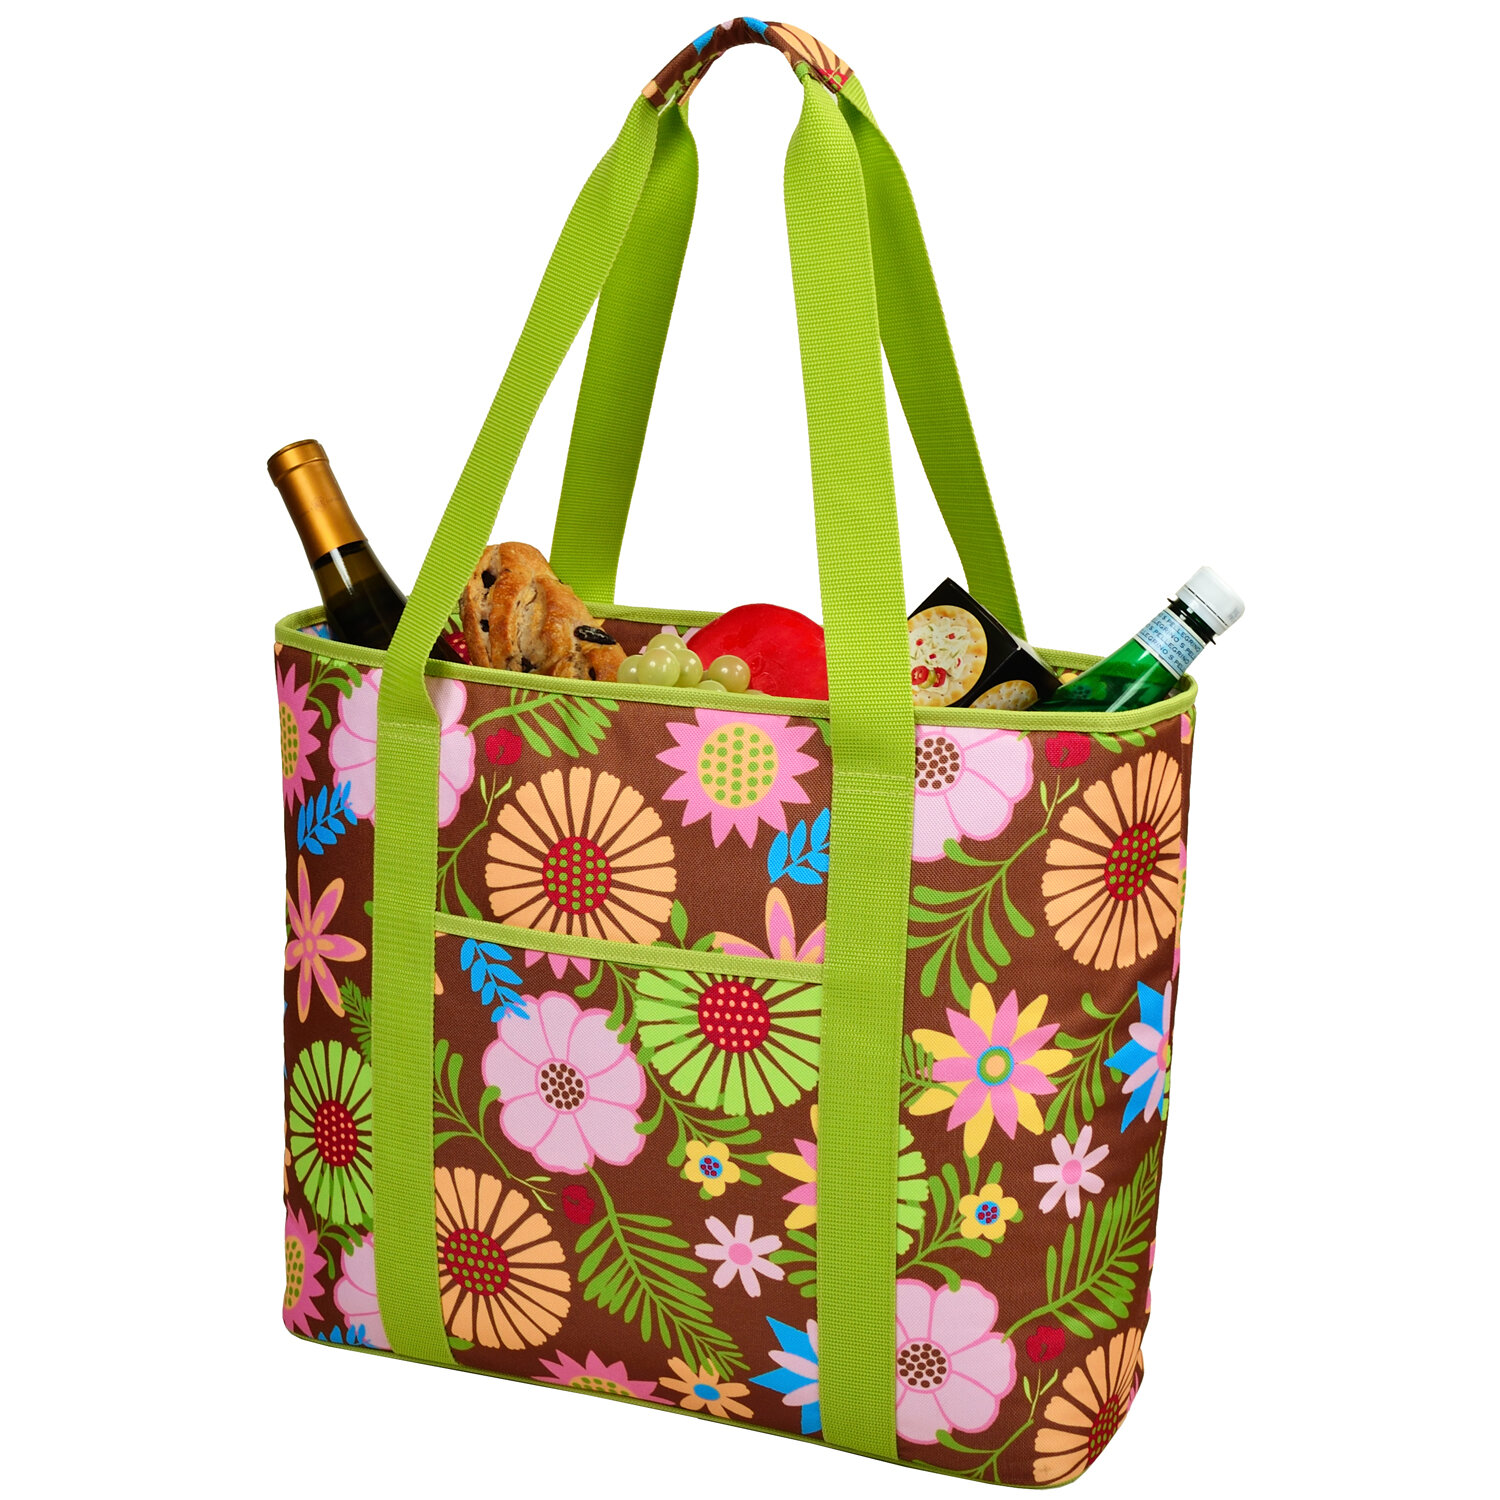 4a73a1991329 Picnic at Ascot 30 Can Floral Extra Large Insulated Tote Cooler ...